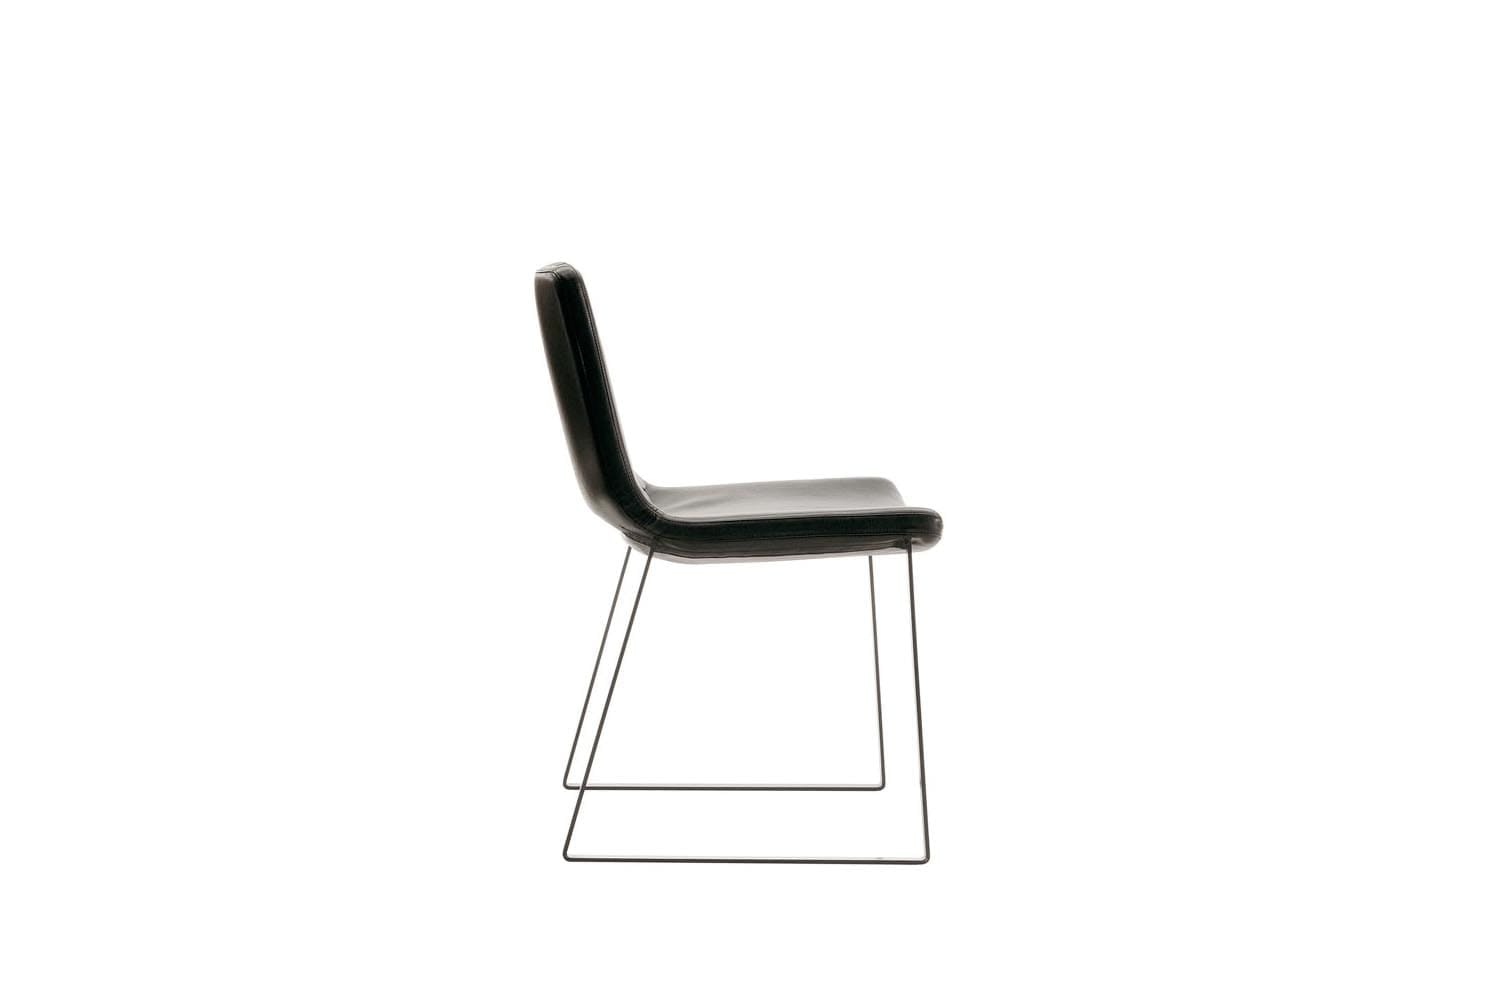 Metropolitan Chair with Sled Base by Jeffrey Bernett for B&B Italia